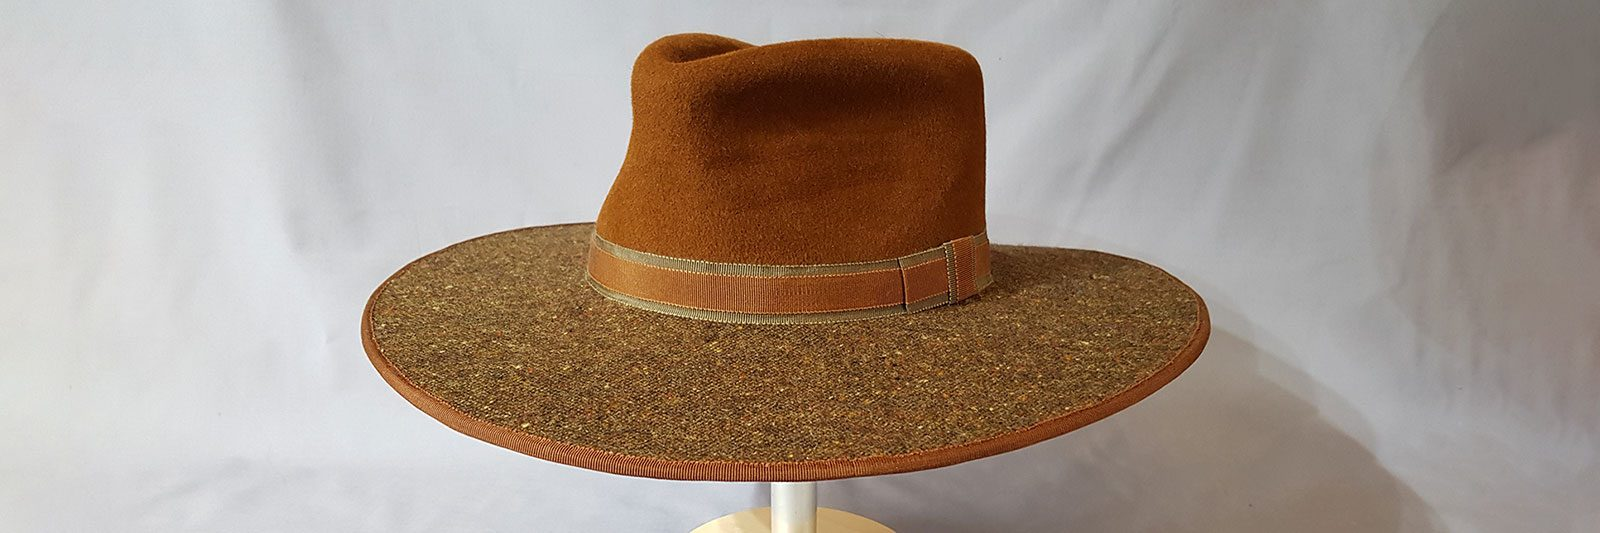 Noble Suitor hat with tweed brim